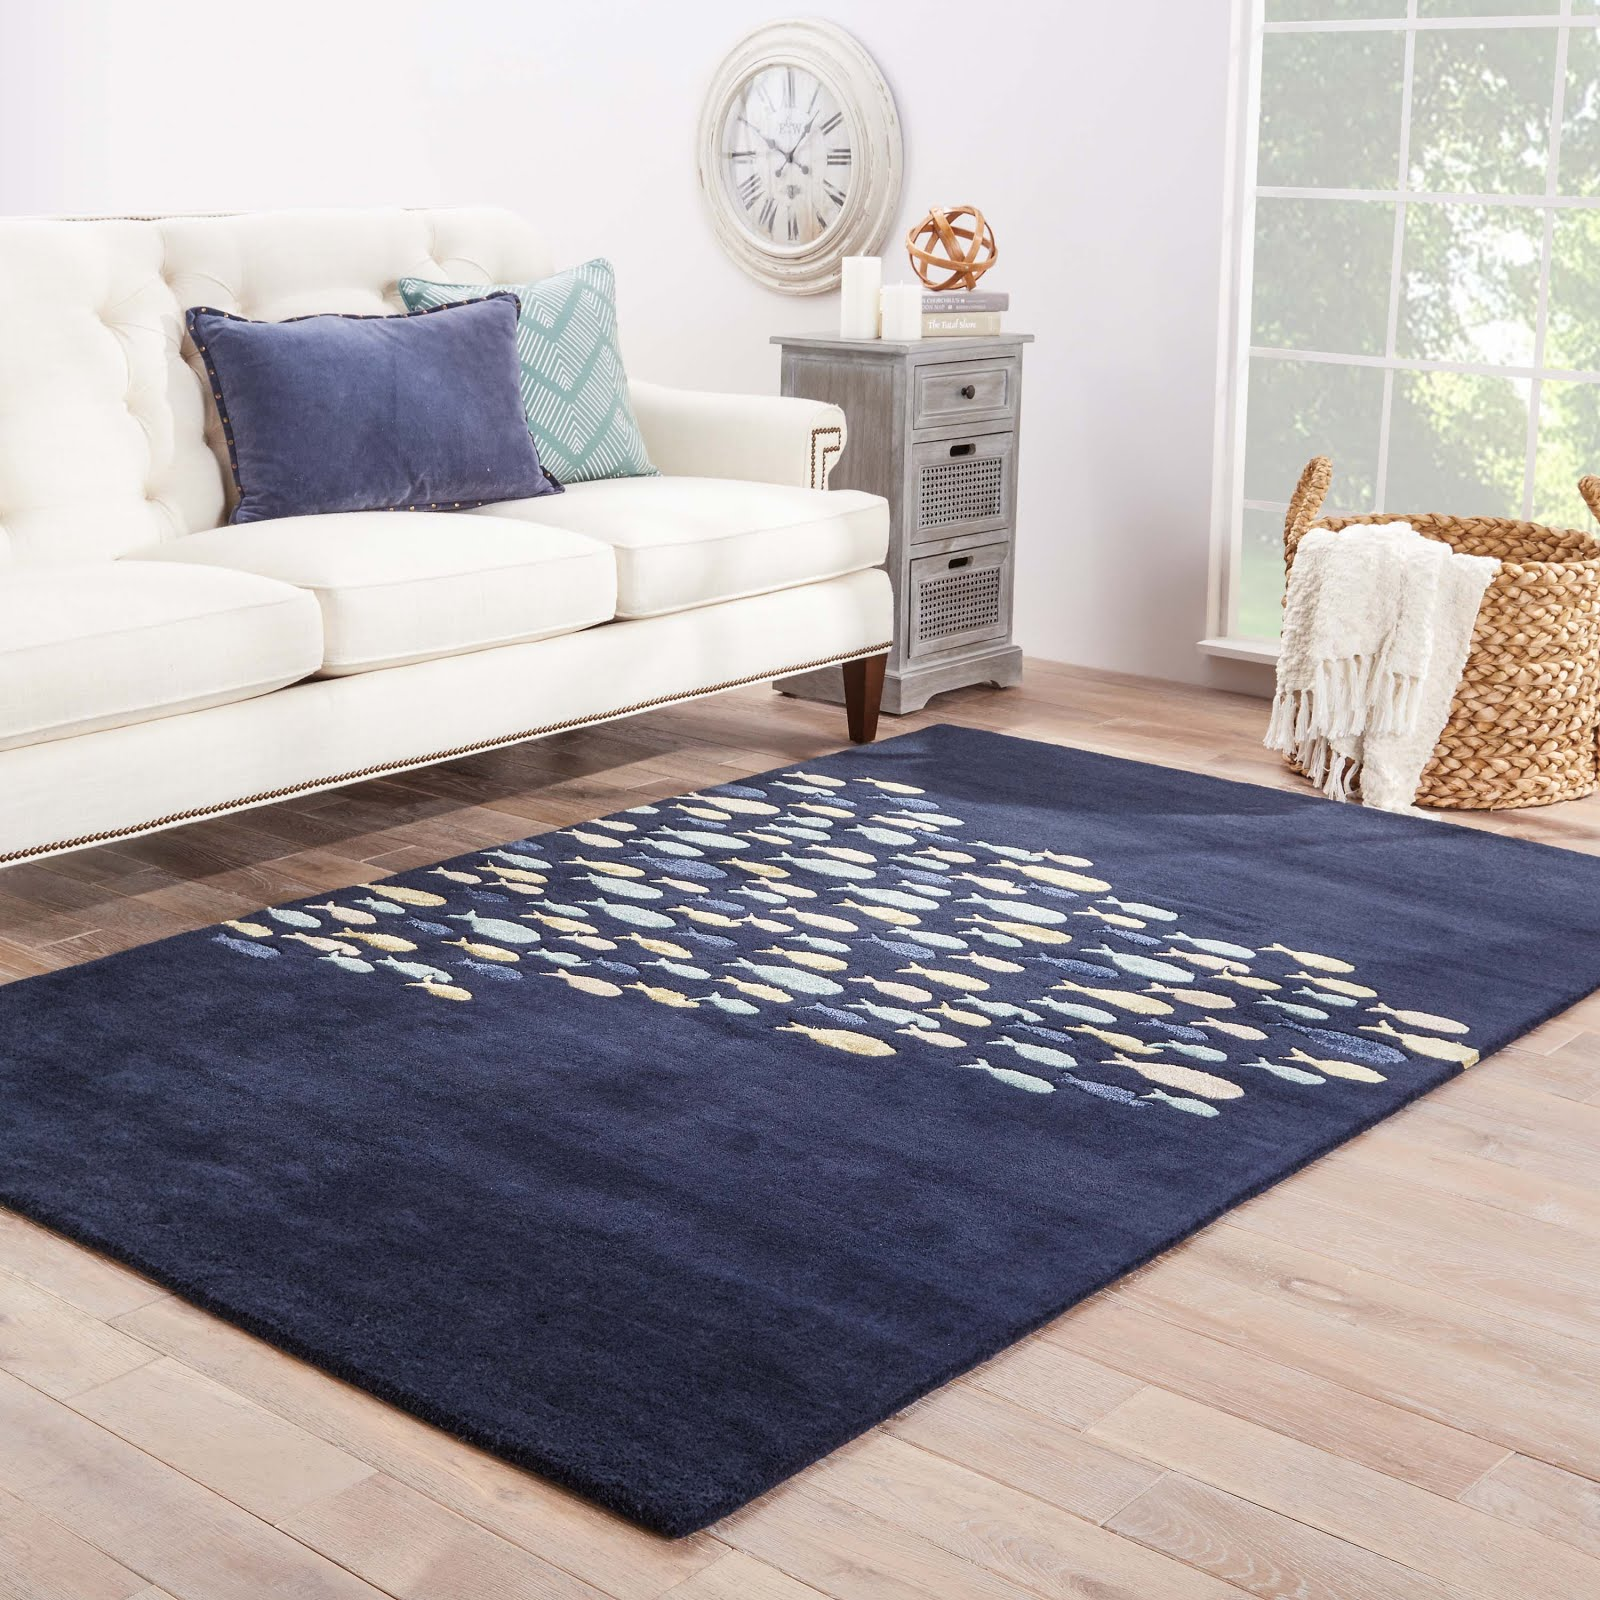 """Anchor"" Your Room with a Coastal Rug!"